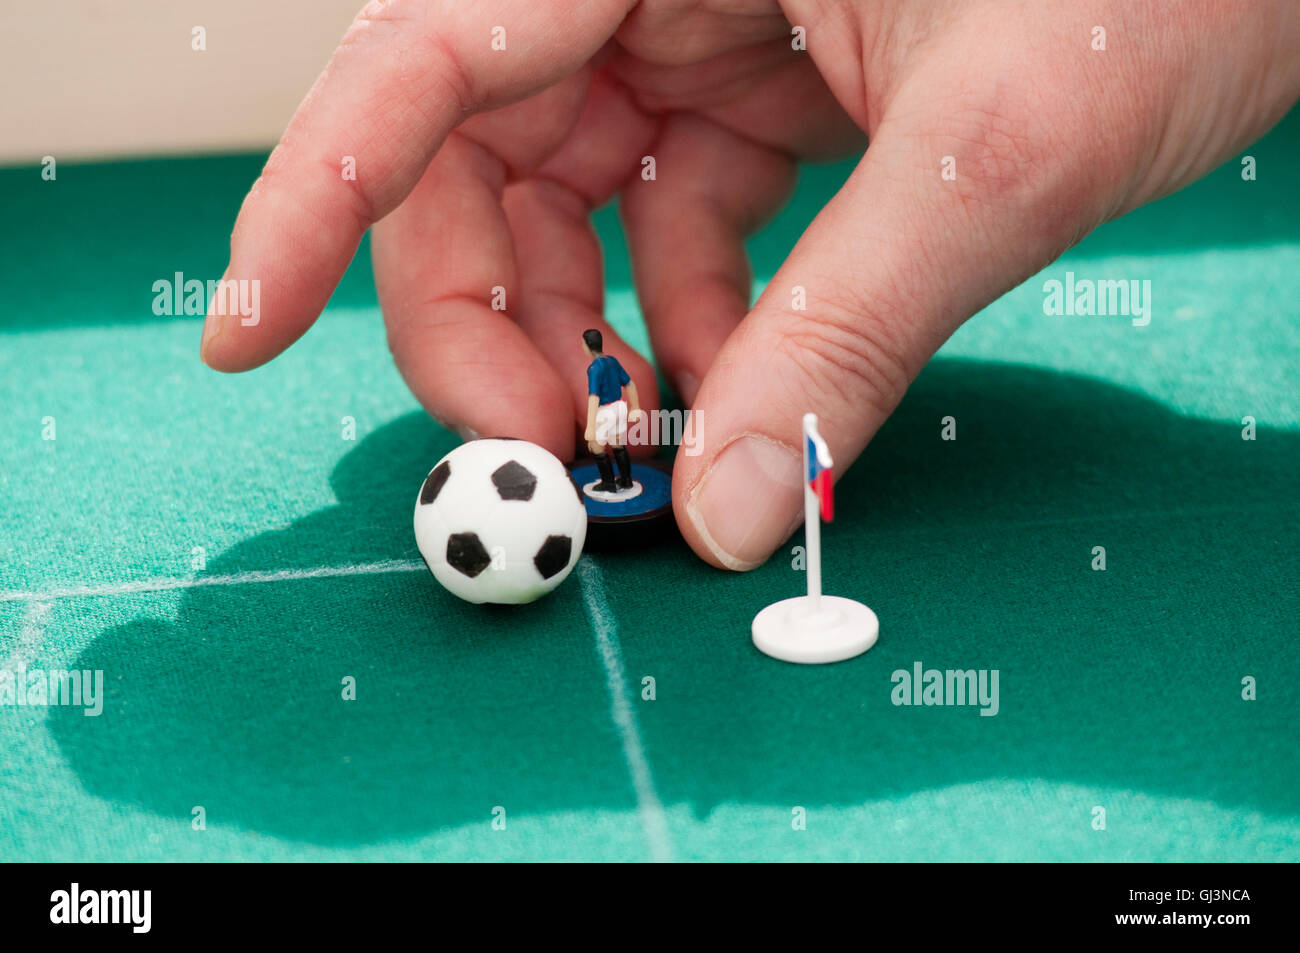 Person Playing Subbuteo Table Football - Stock Image